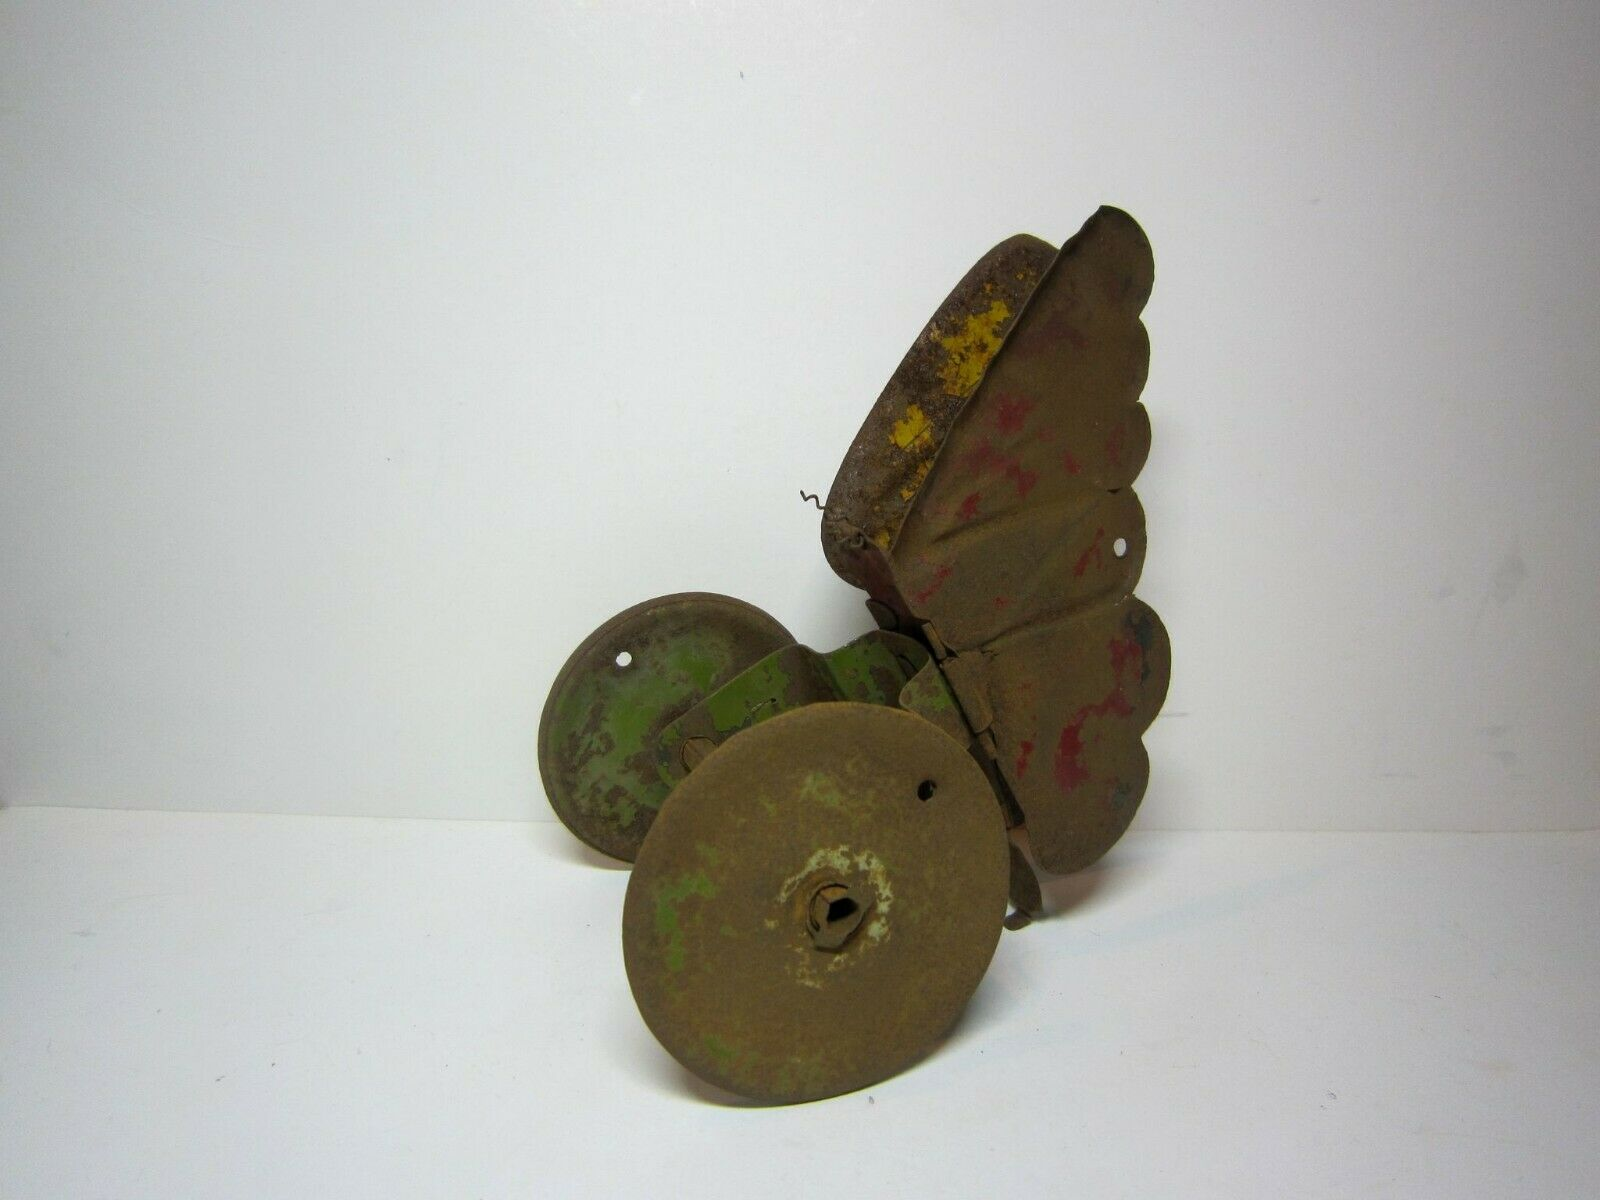 Vintage antique rare Soviet metal toy roller butterfly 30s.Size 90X190 mm.